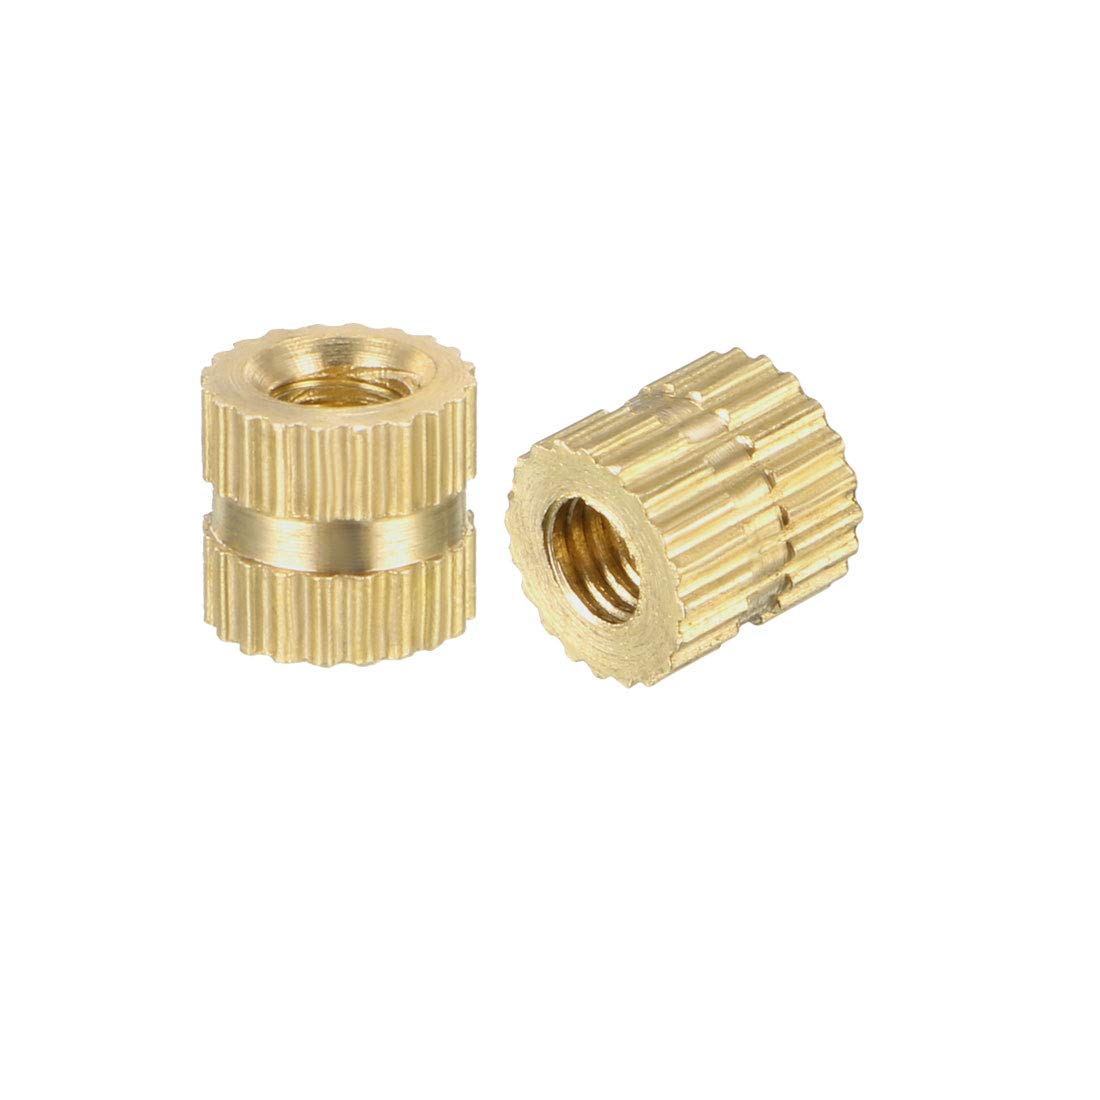 Embedment Nuts binifiMux 100pcs M4 Female Brass Thread Insertd Knurled Nuts Assortment Kit m4